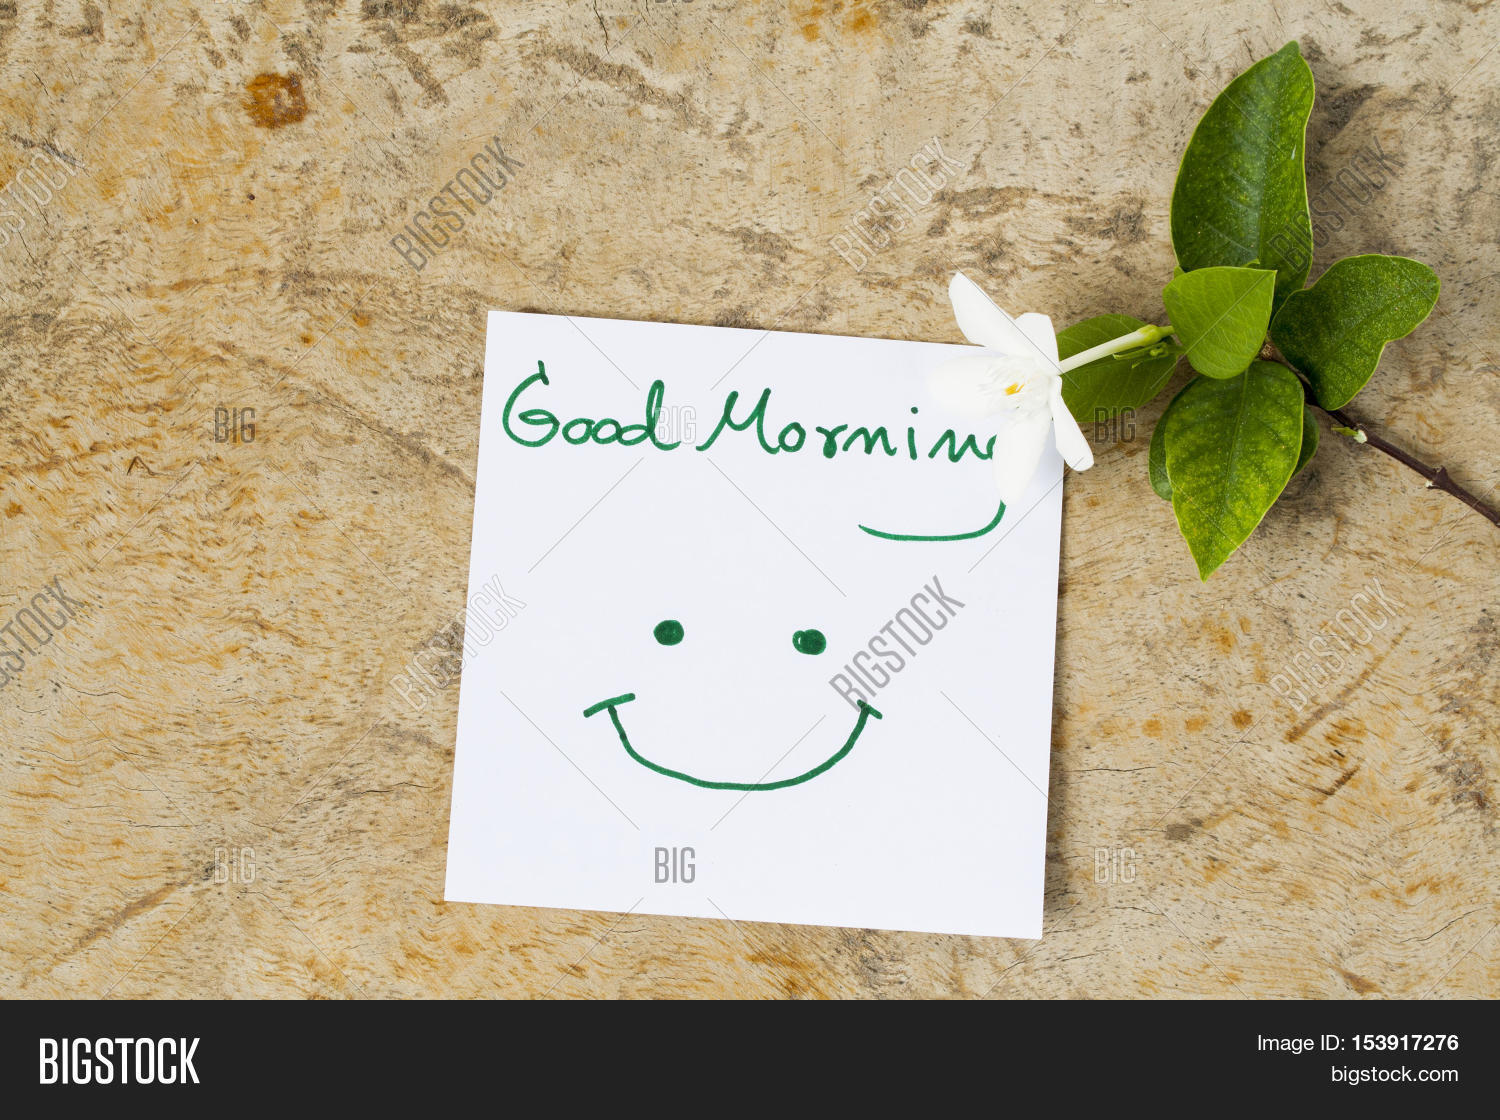 Good morning message image photo free trial bigstock good morning message card greeting and white flowers on background old wood mightylinksfo